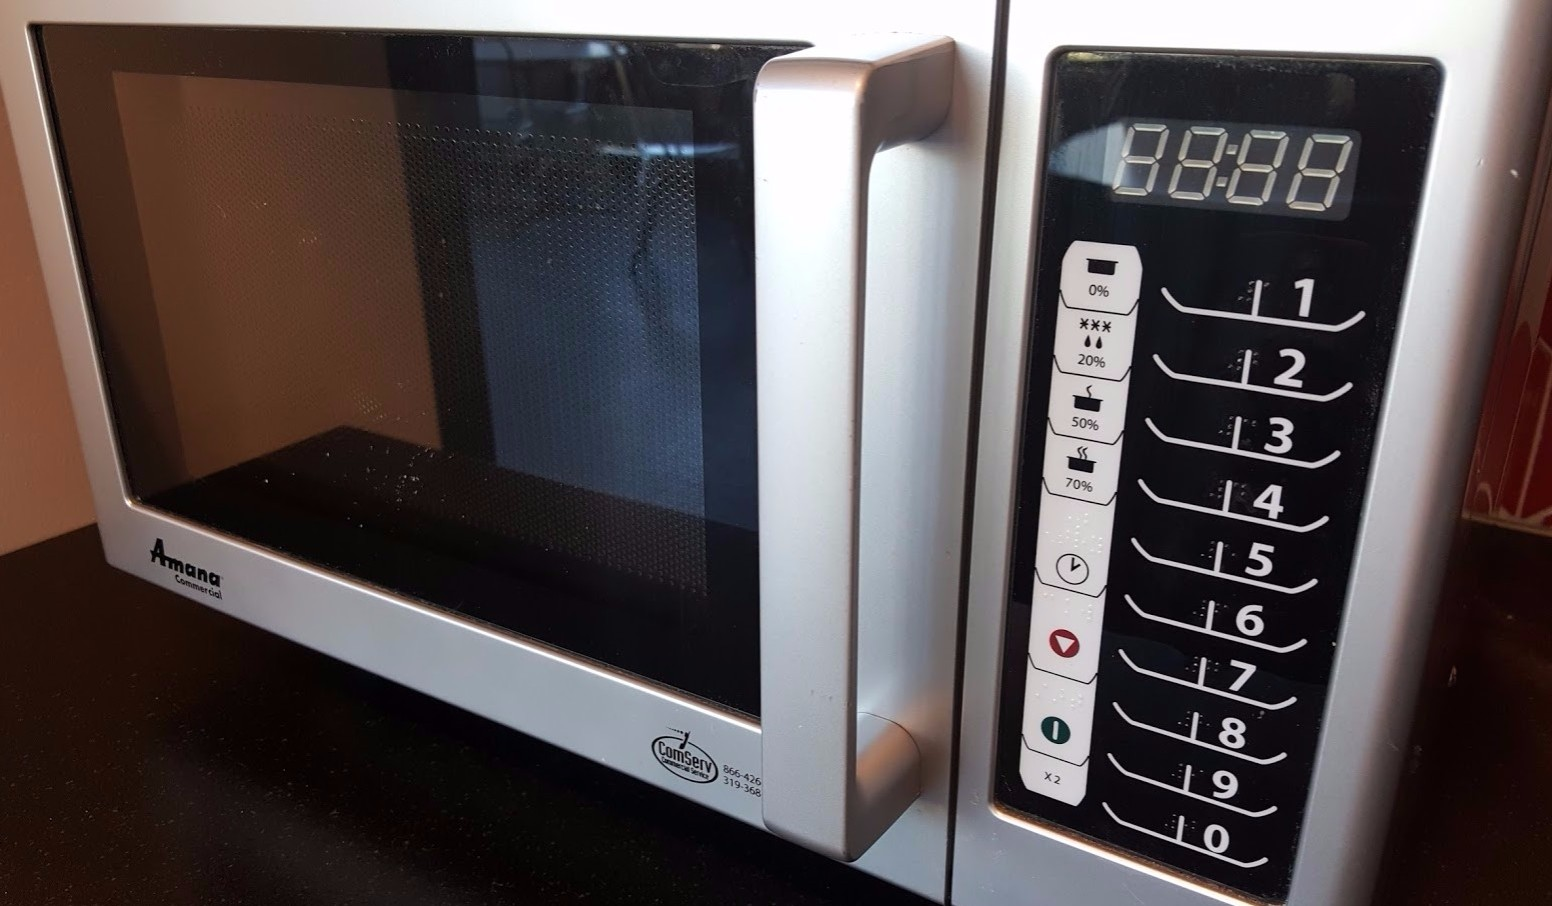 microwave-buttons-with-numbers